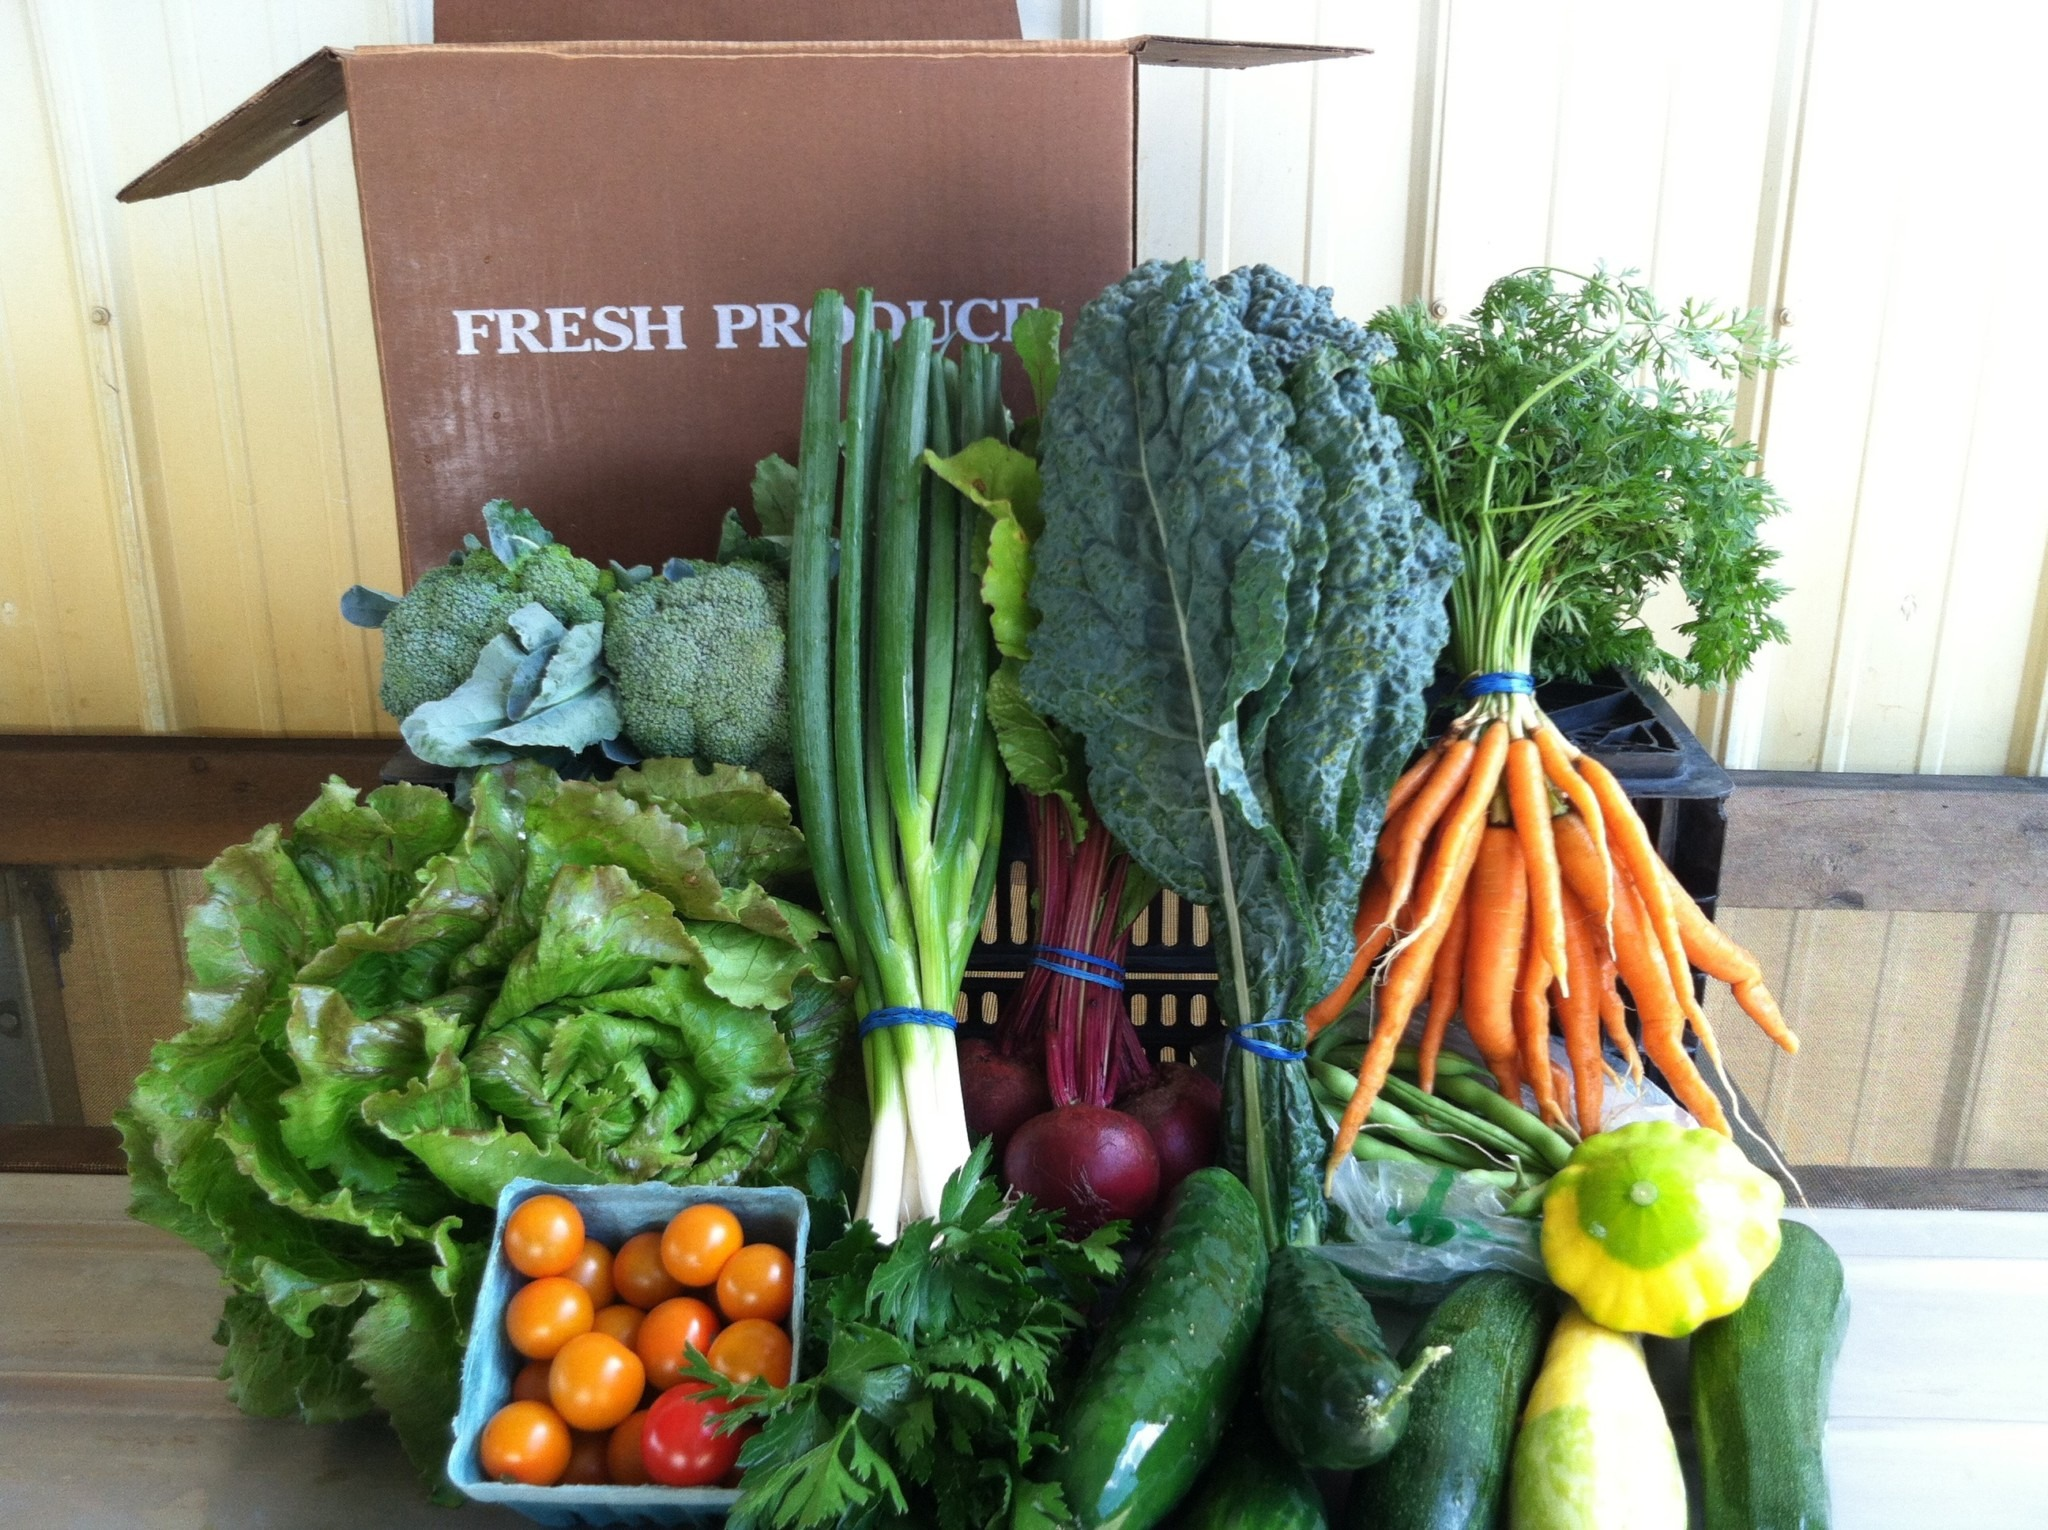 CSA box with green onion carrot cucumber lettuce and other vegetables